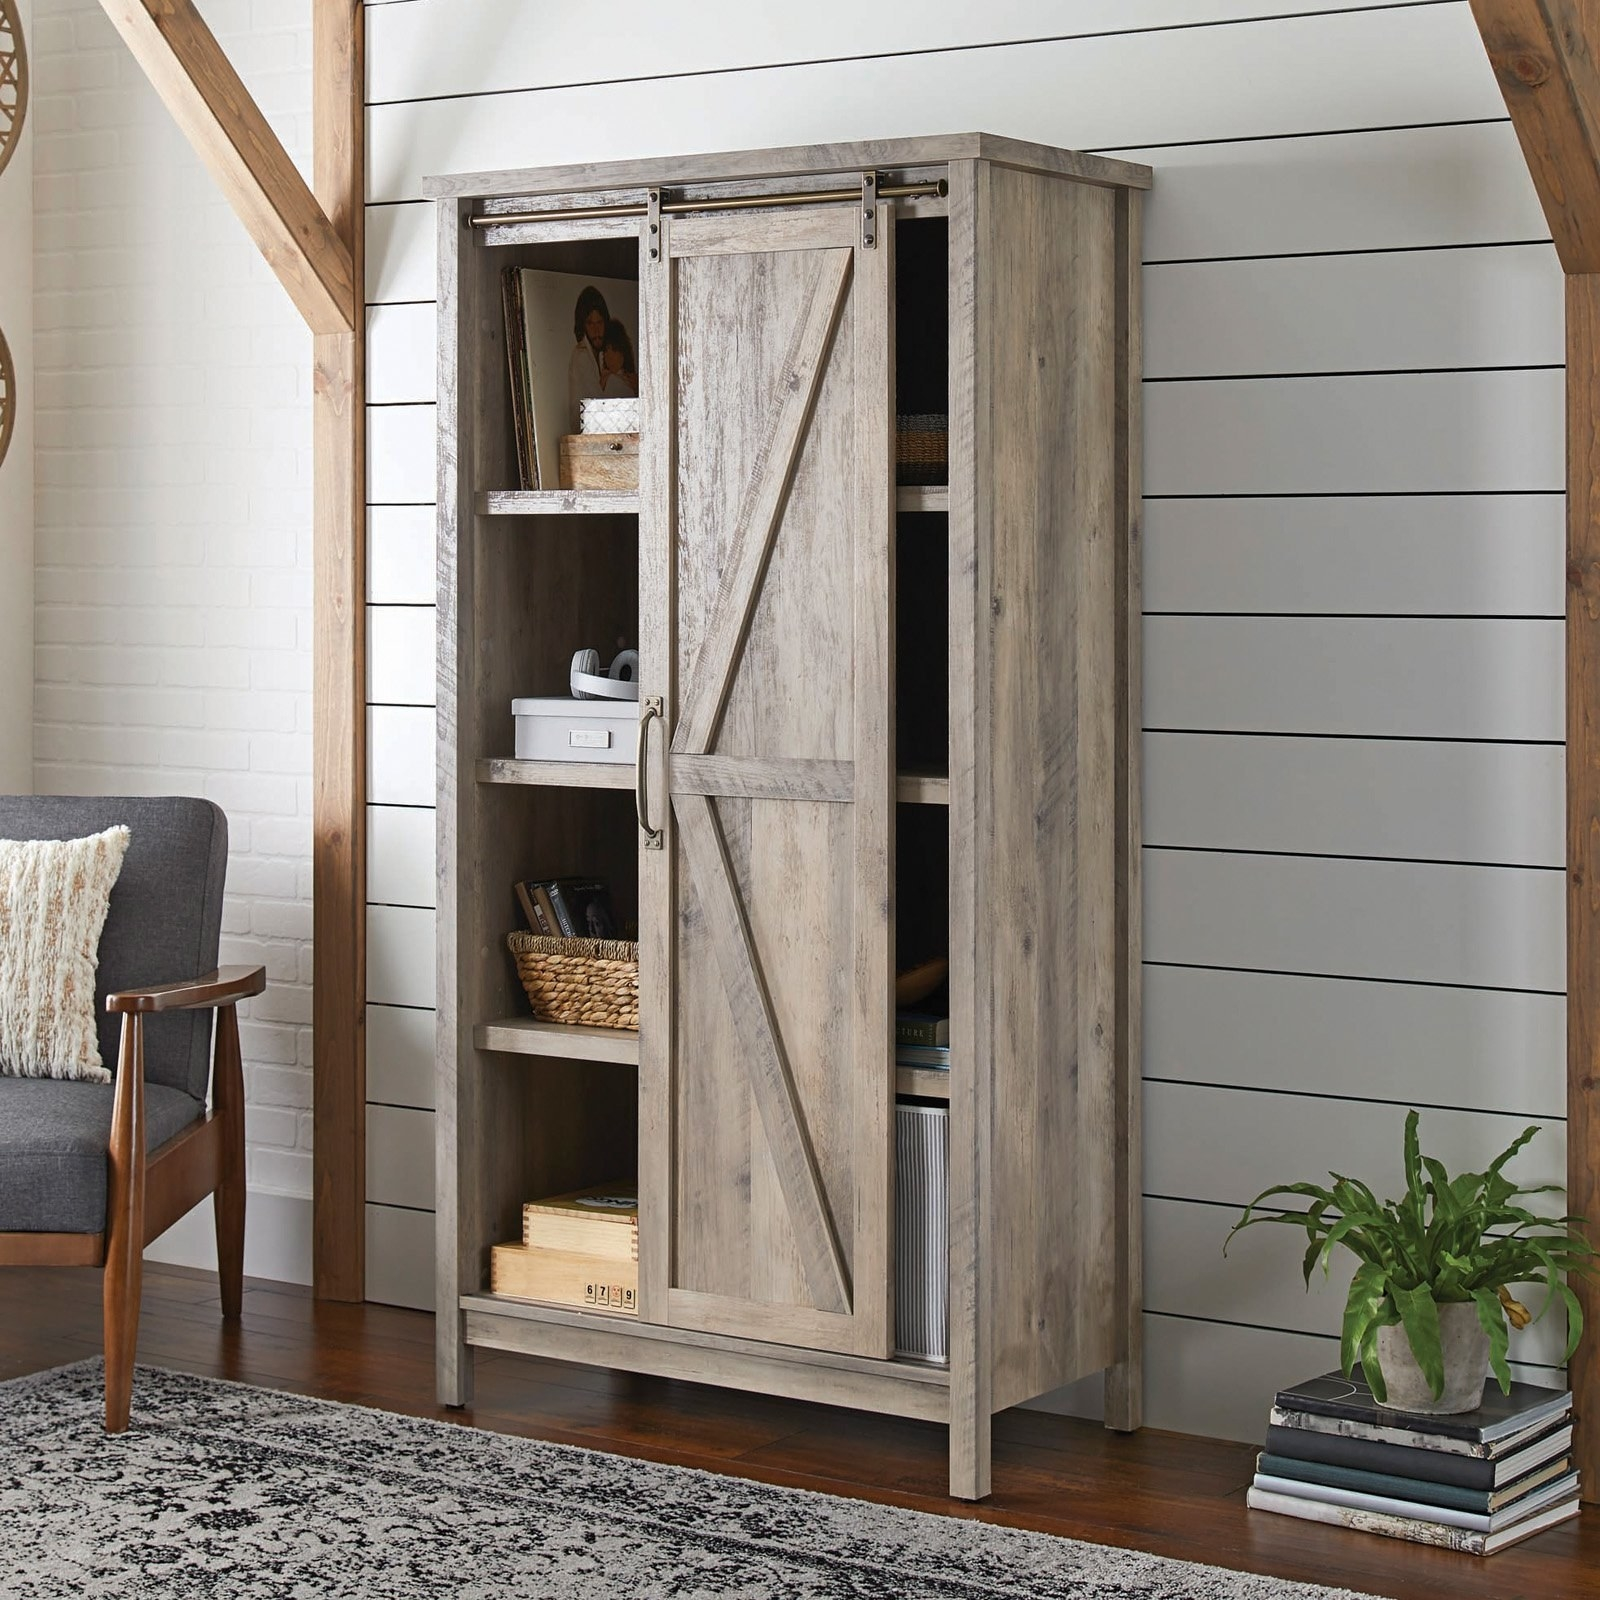 The grey cabinet in a living room